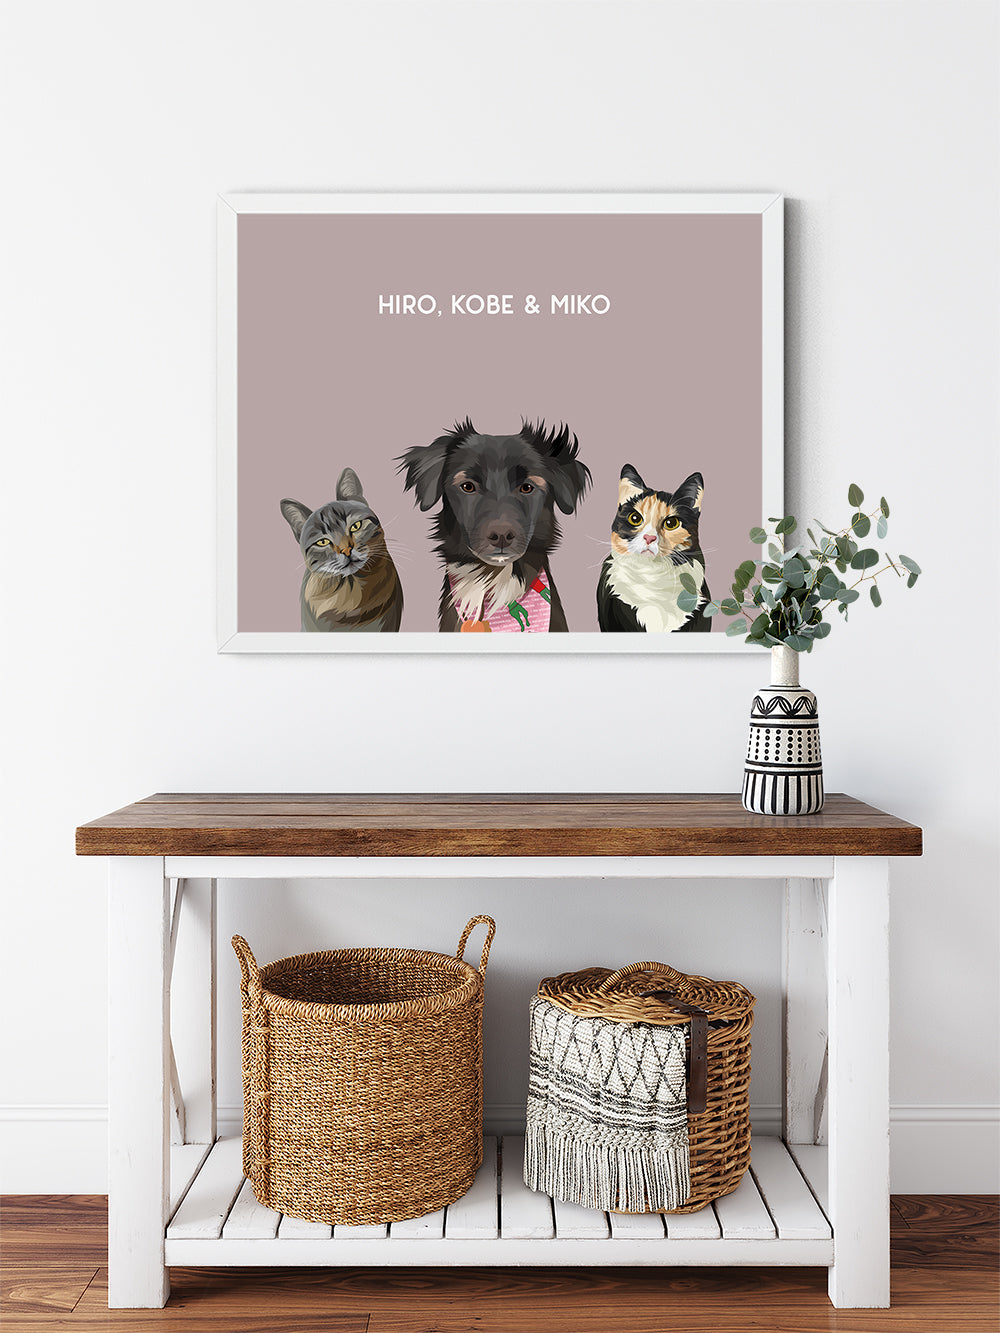 Trio custom framed pet portrait of a cat, dog and cat on blush pink background with white frame. Personalized name of cat, dog and cat in white font.